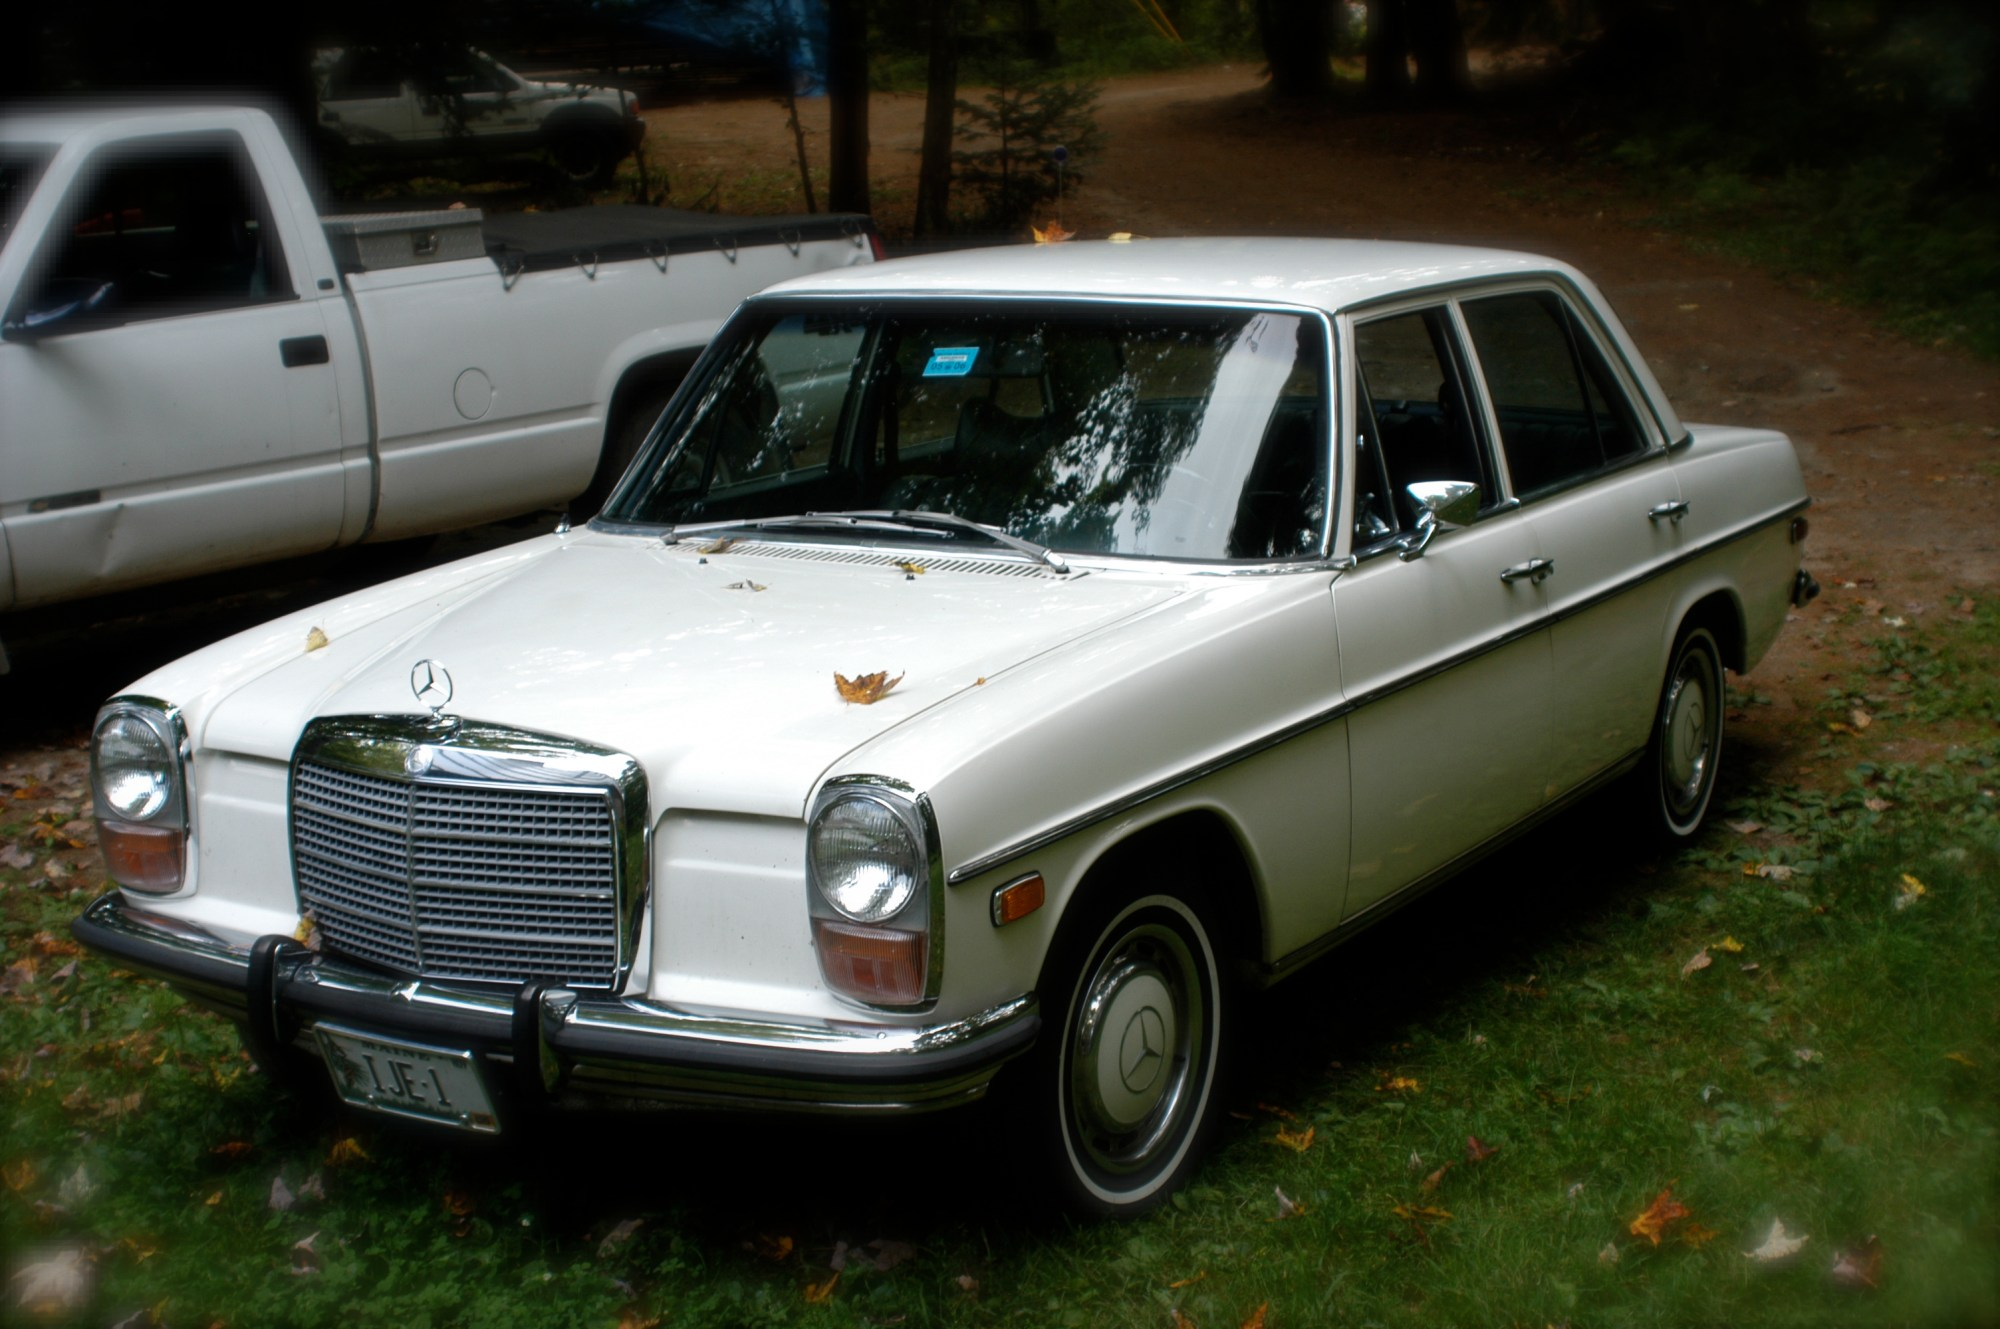 hight resolution of mercedes benz w114 wikipedia1973 mercedes benz w115 220d with us spec headlights and corresponding side markers